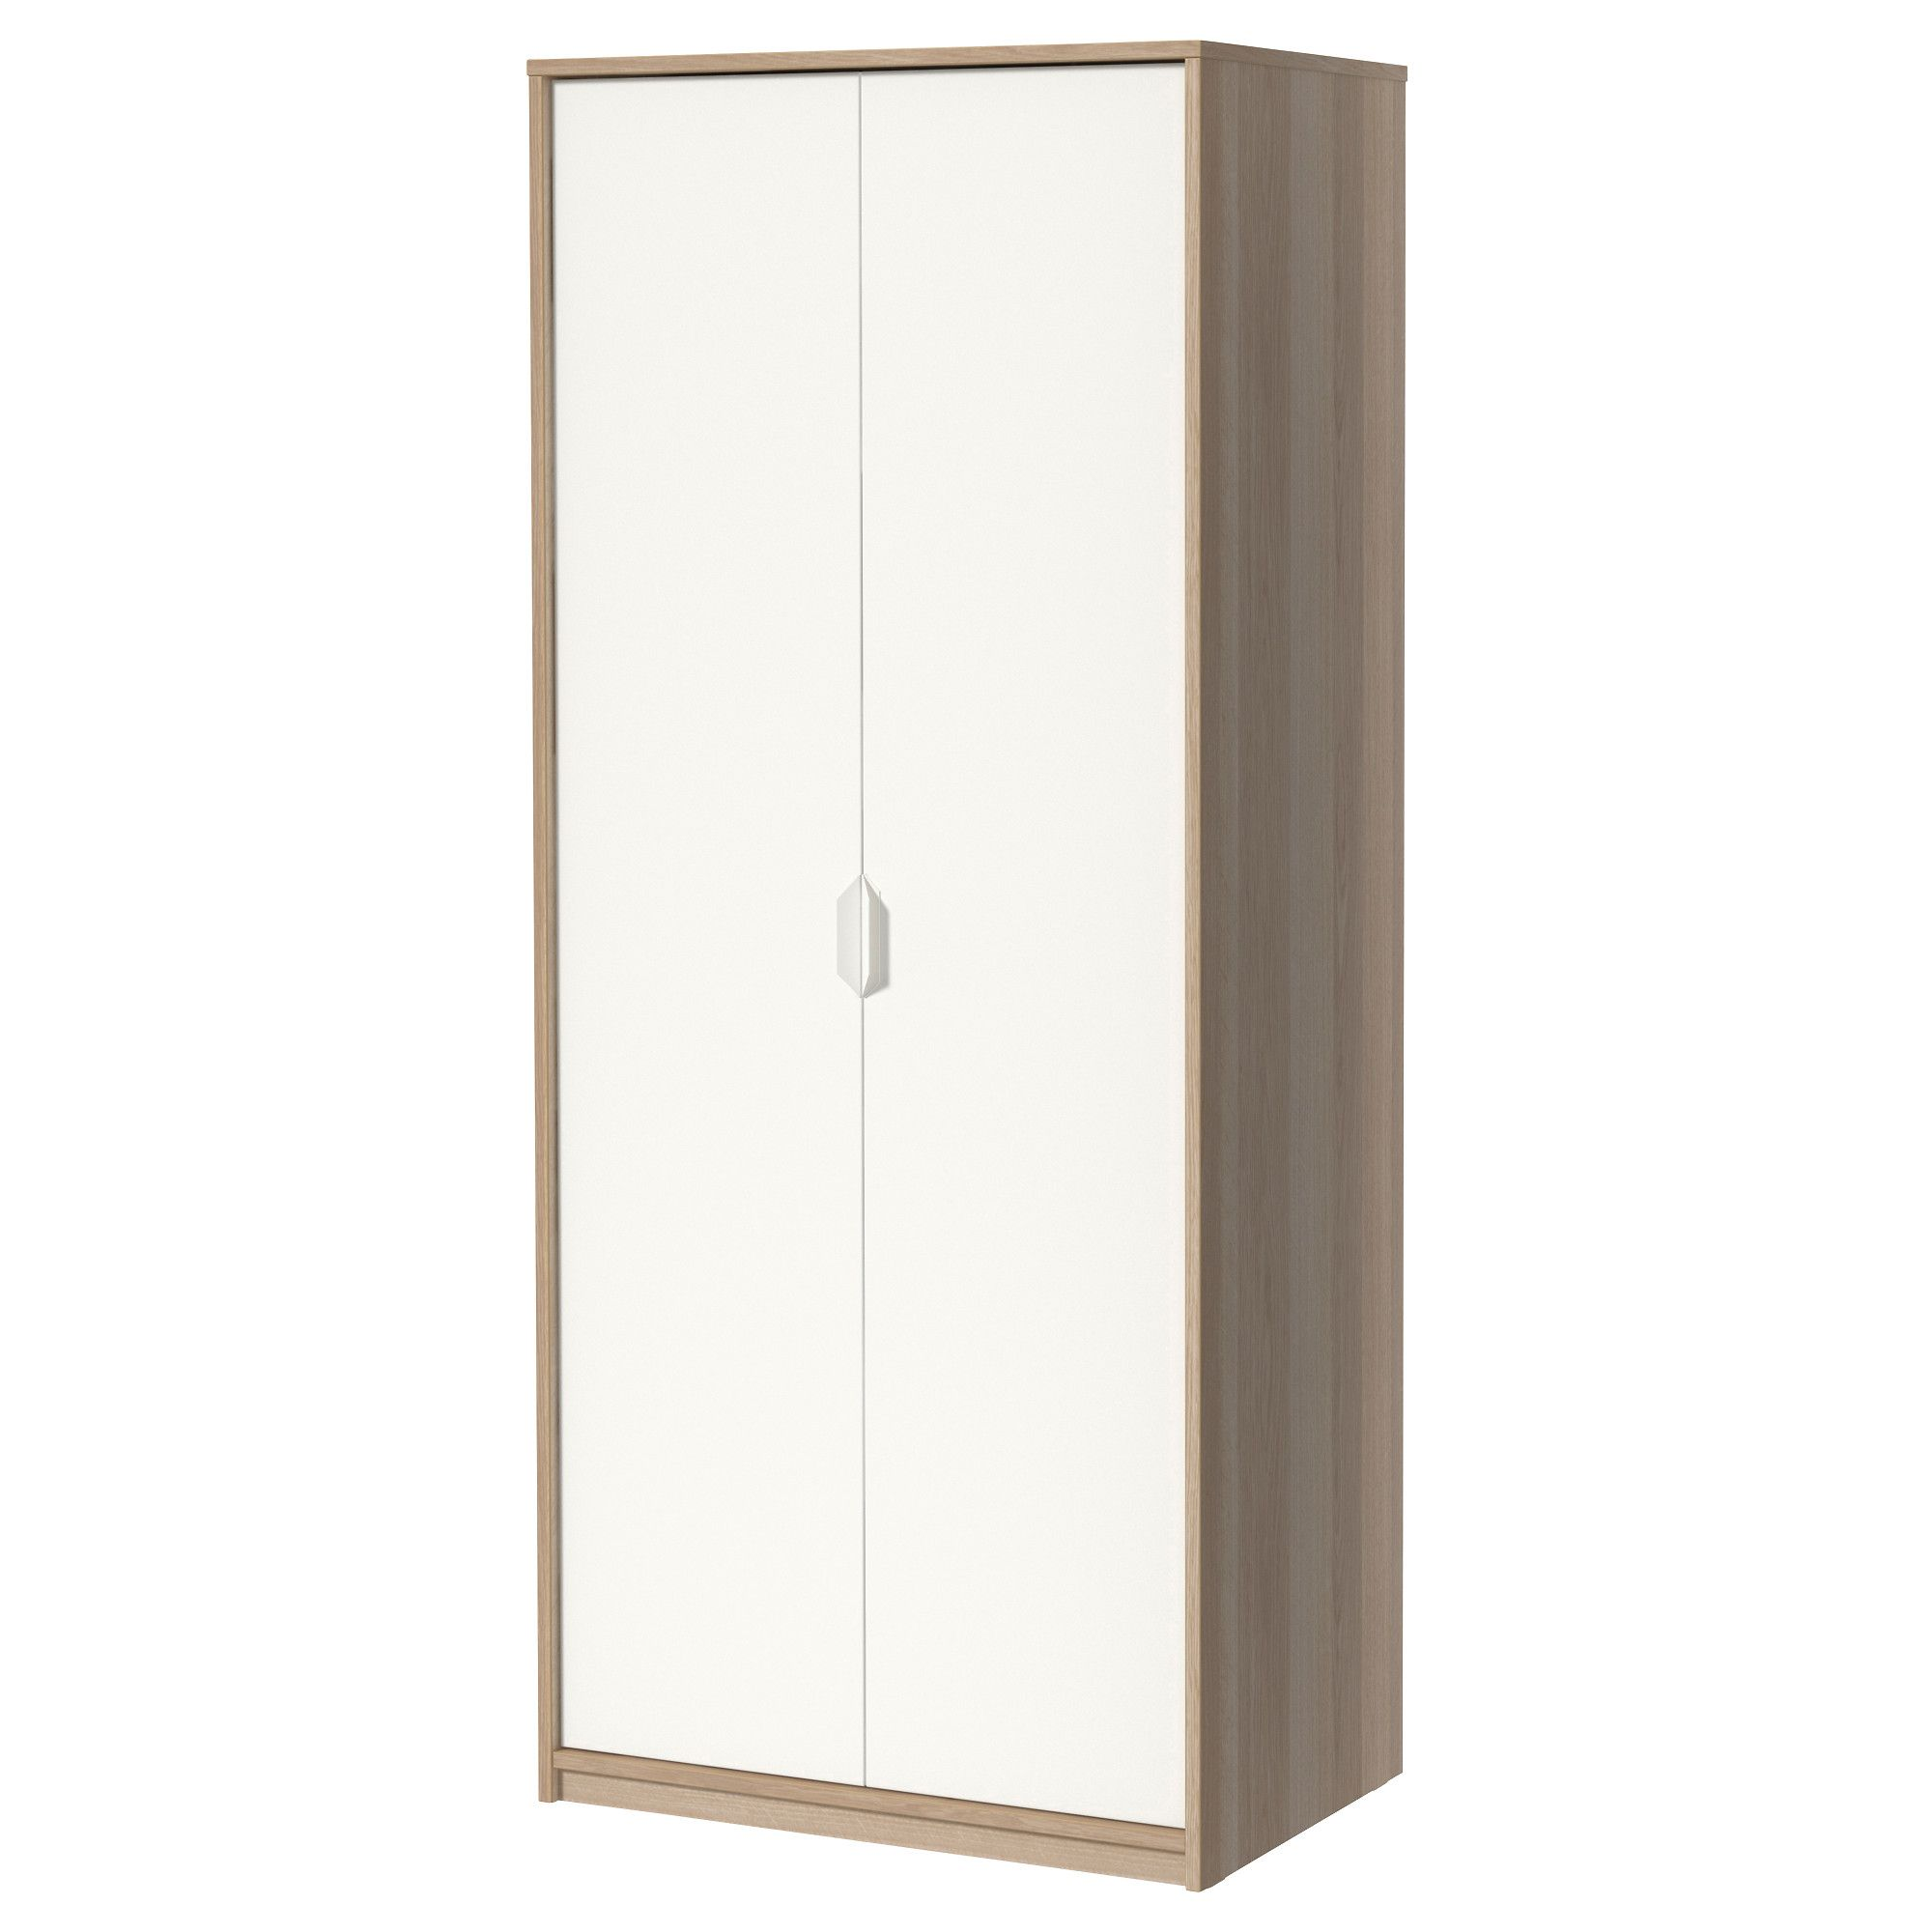 ASKVOLL Wardrobe White Stained Oak Effect/white 80x52x189